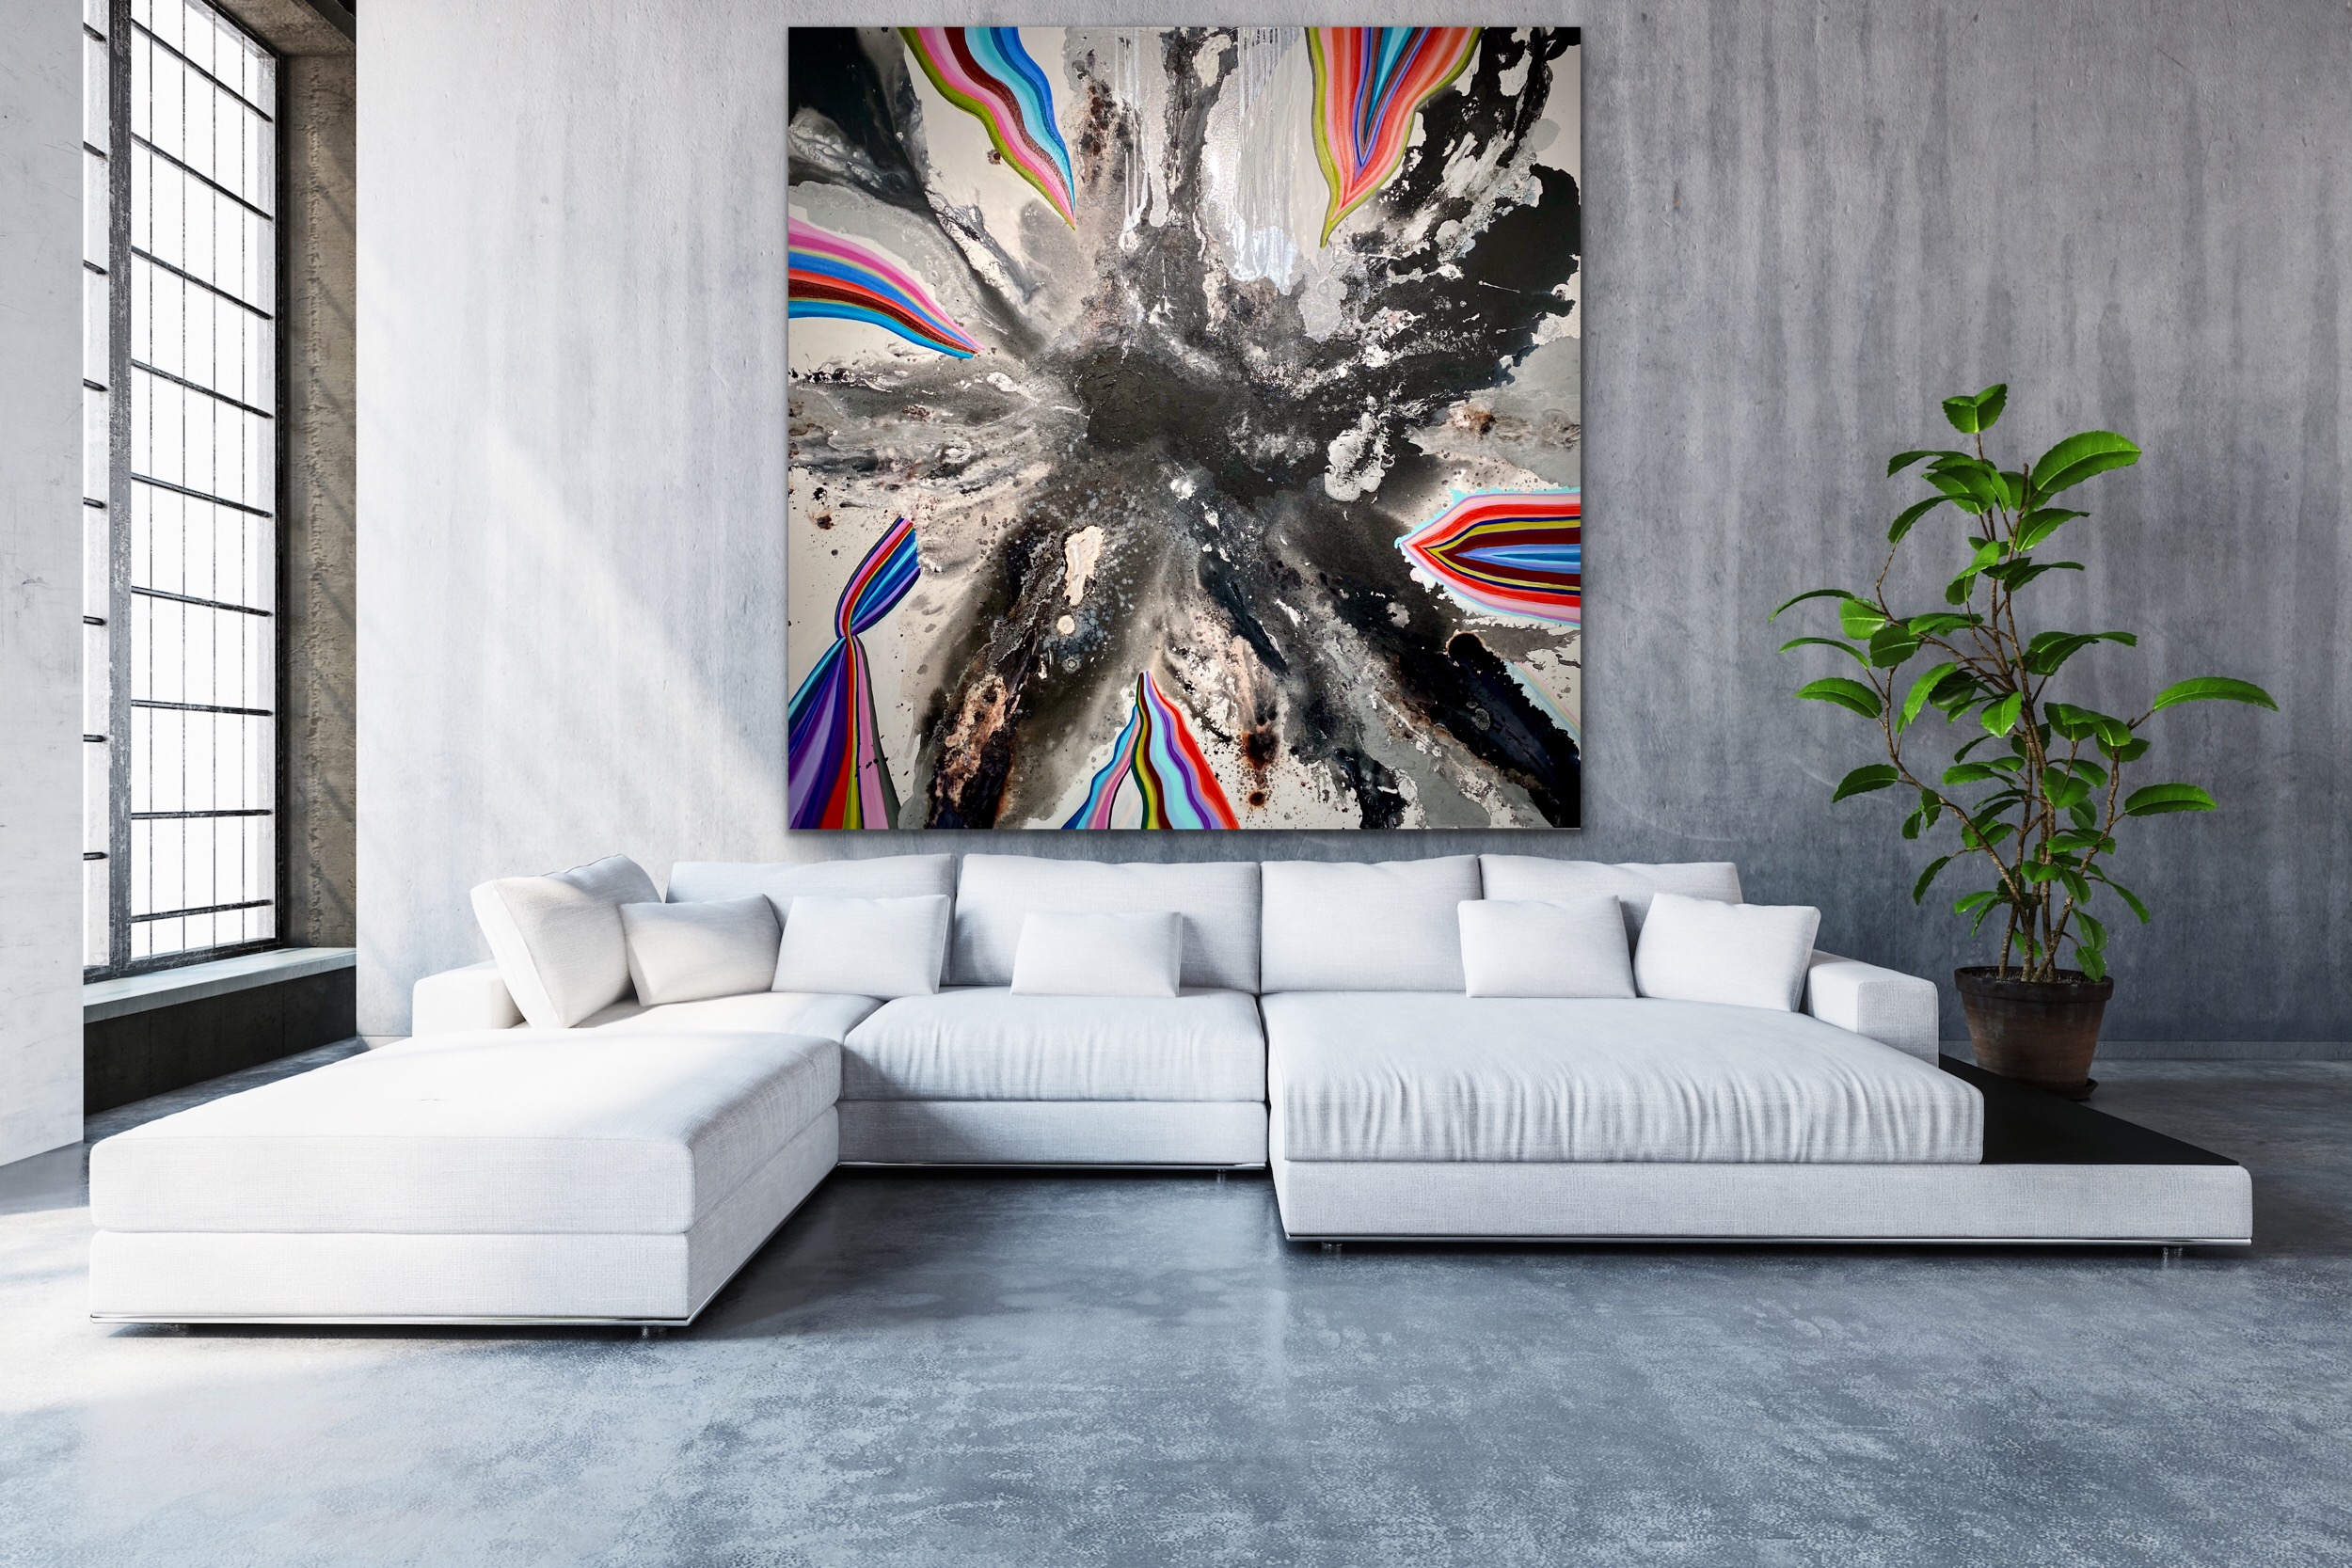 CHRISTI MERIL ART-HIGHER GROUND-DALLAS ABSTRACT EXPRESSIONIST-DALLAS ABSTRACT ARTIST-DALLAS LARGE ABSTRACT ART-3